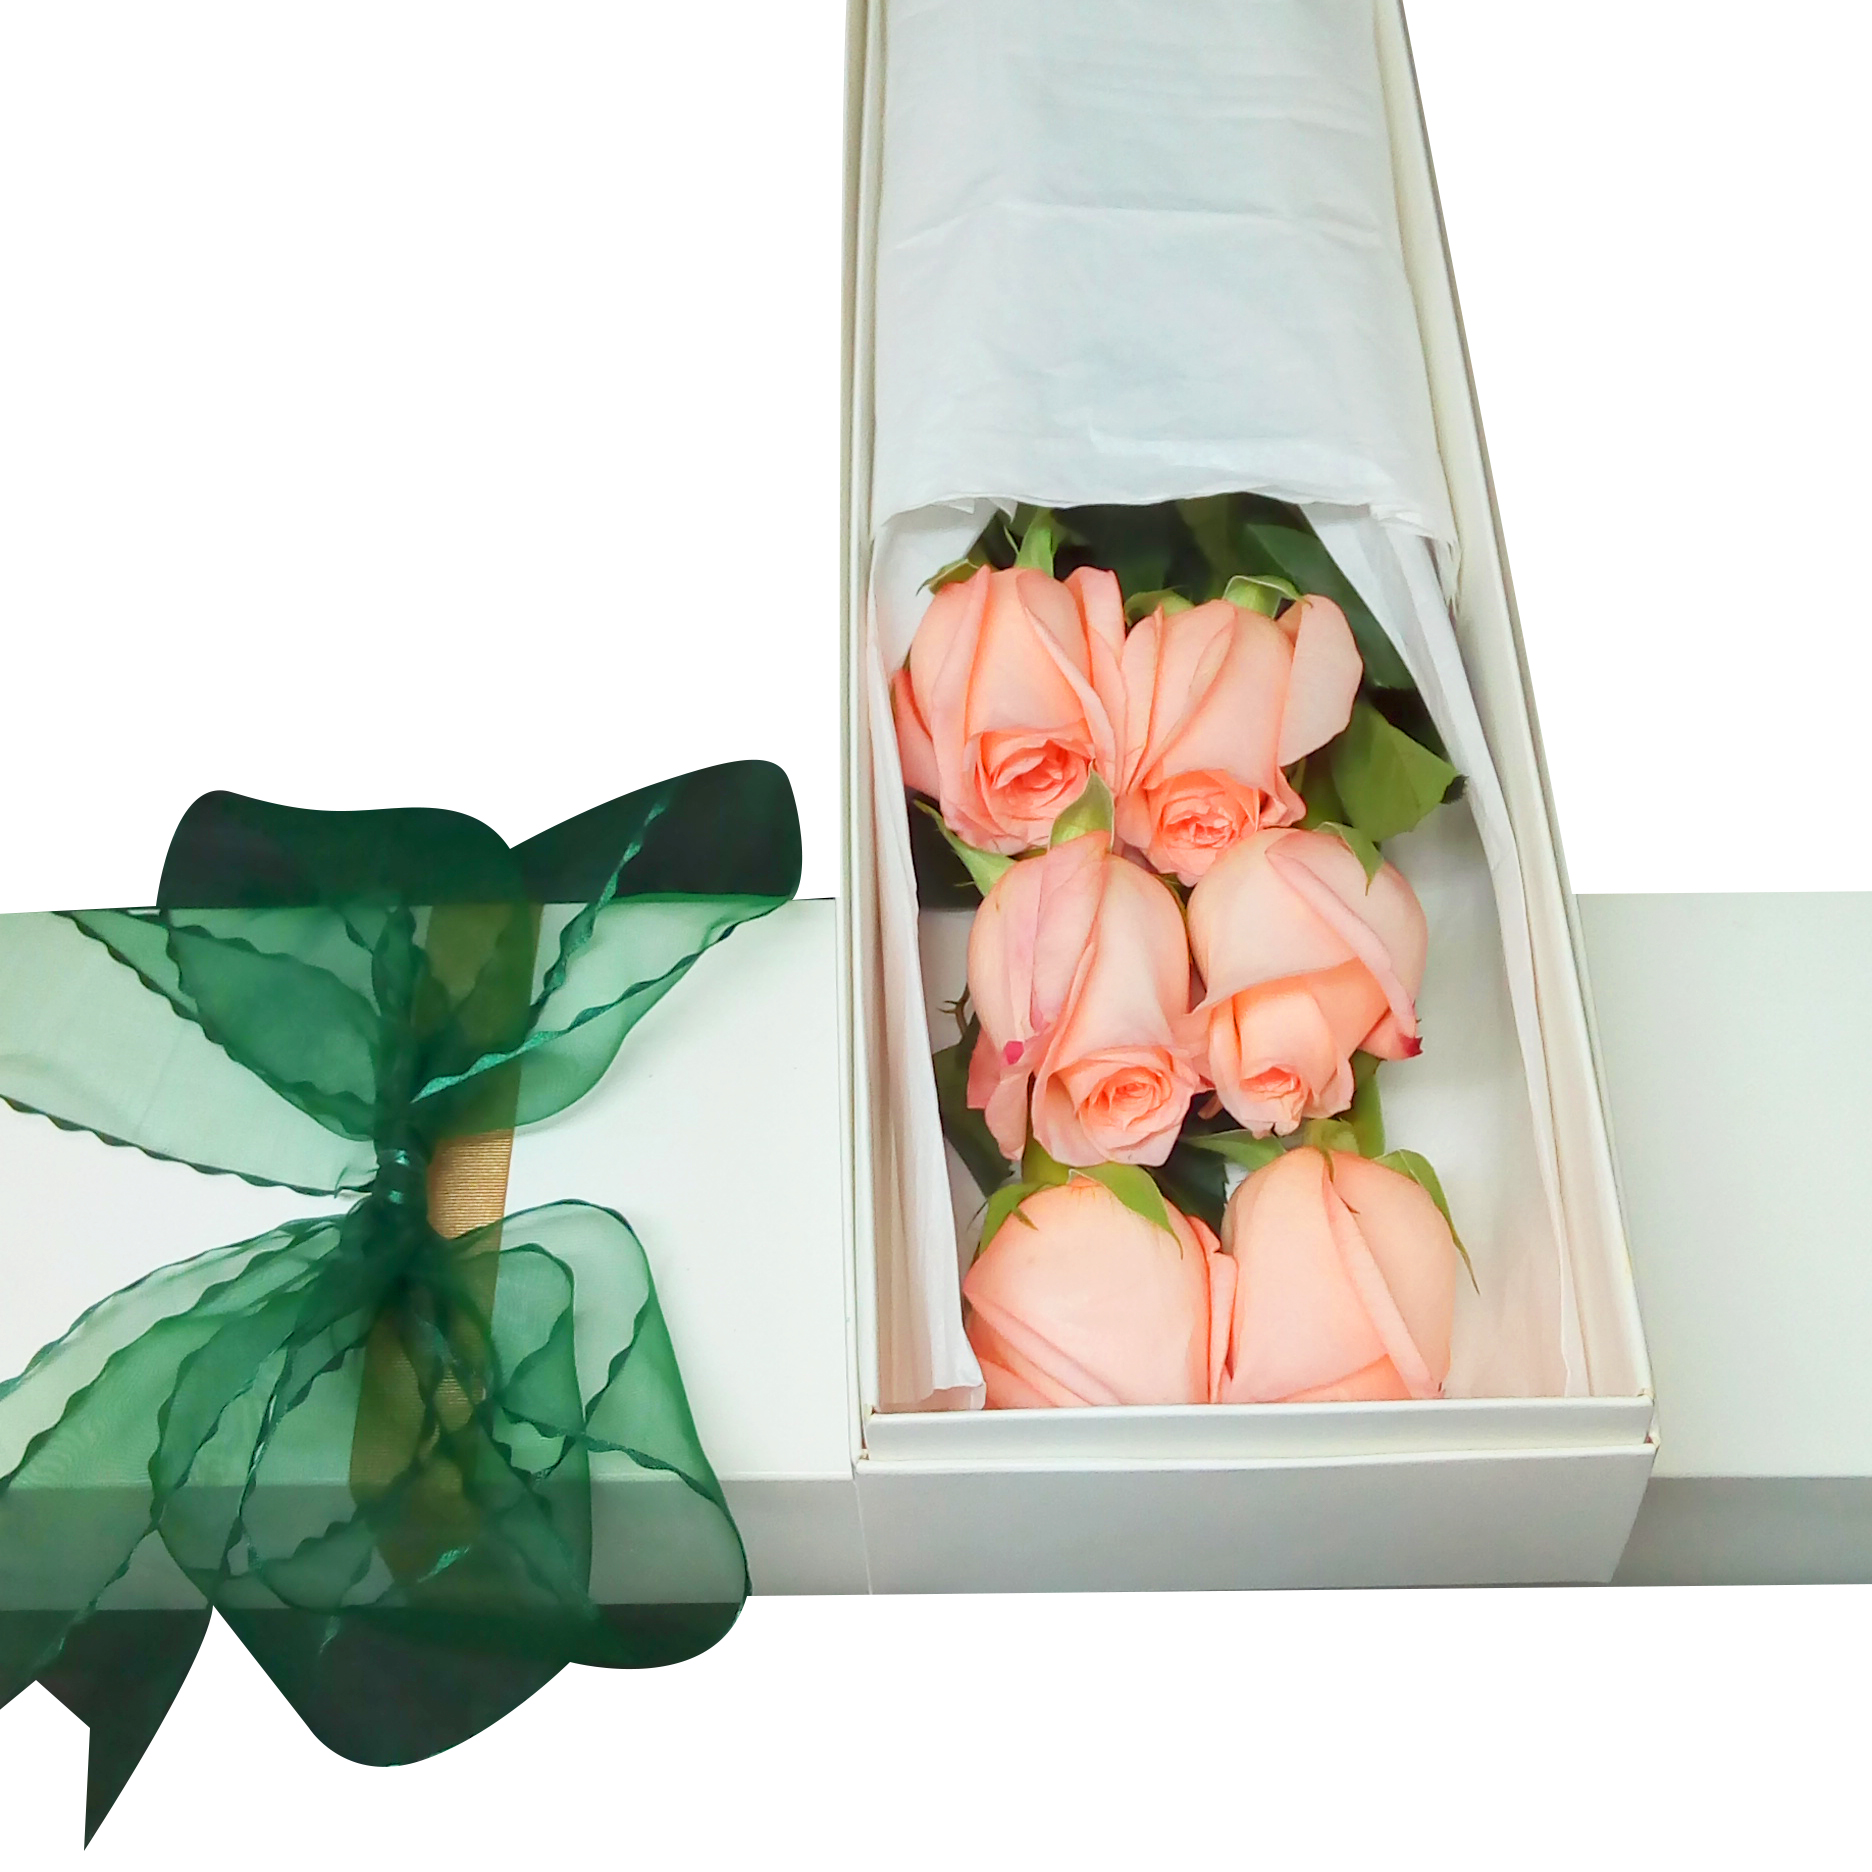 Caja con 6 bellas Rosas de color Rosado